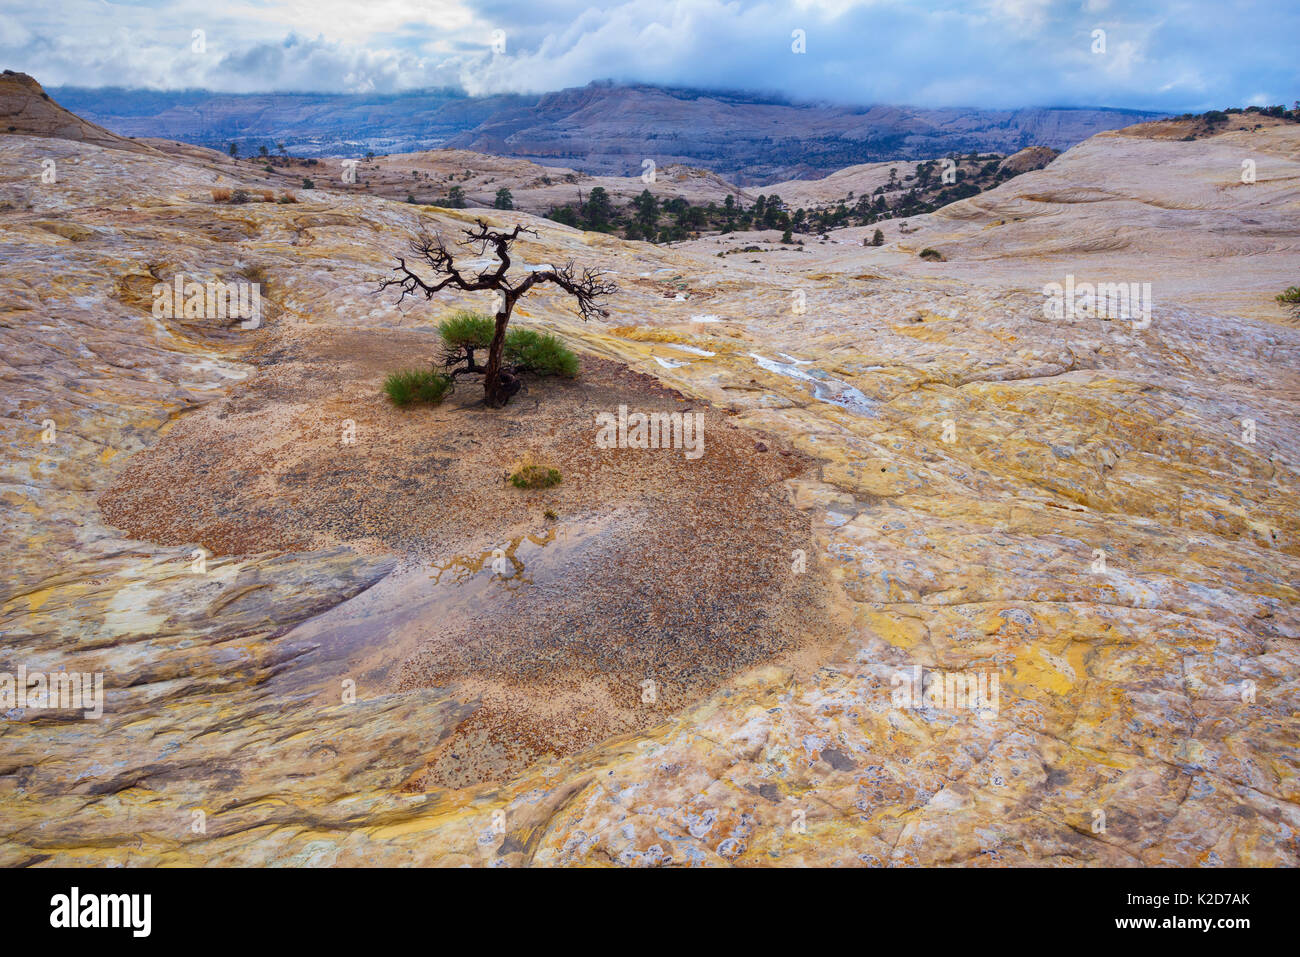 A lonely tree clings to life in the vast sandstone desert of Utah's Escalante National Monument, USA October - Stock Image